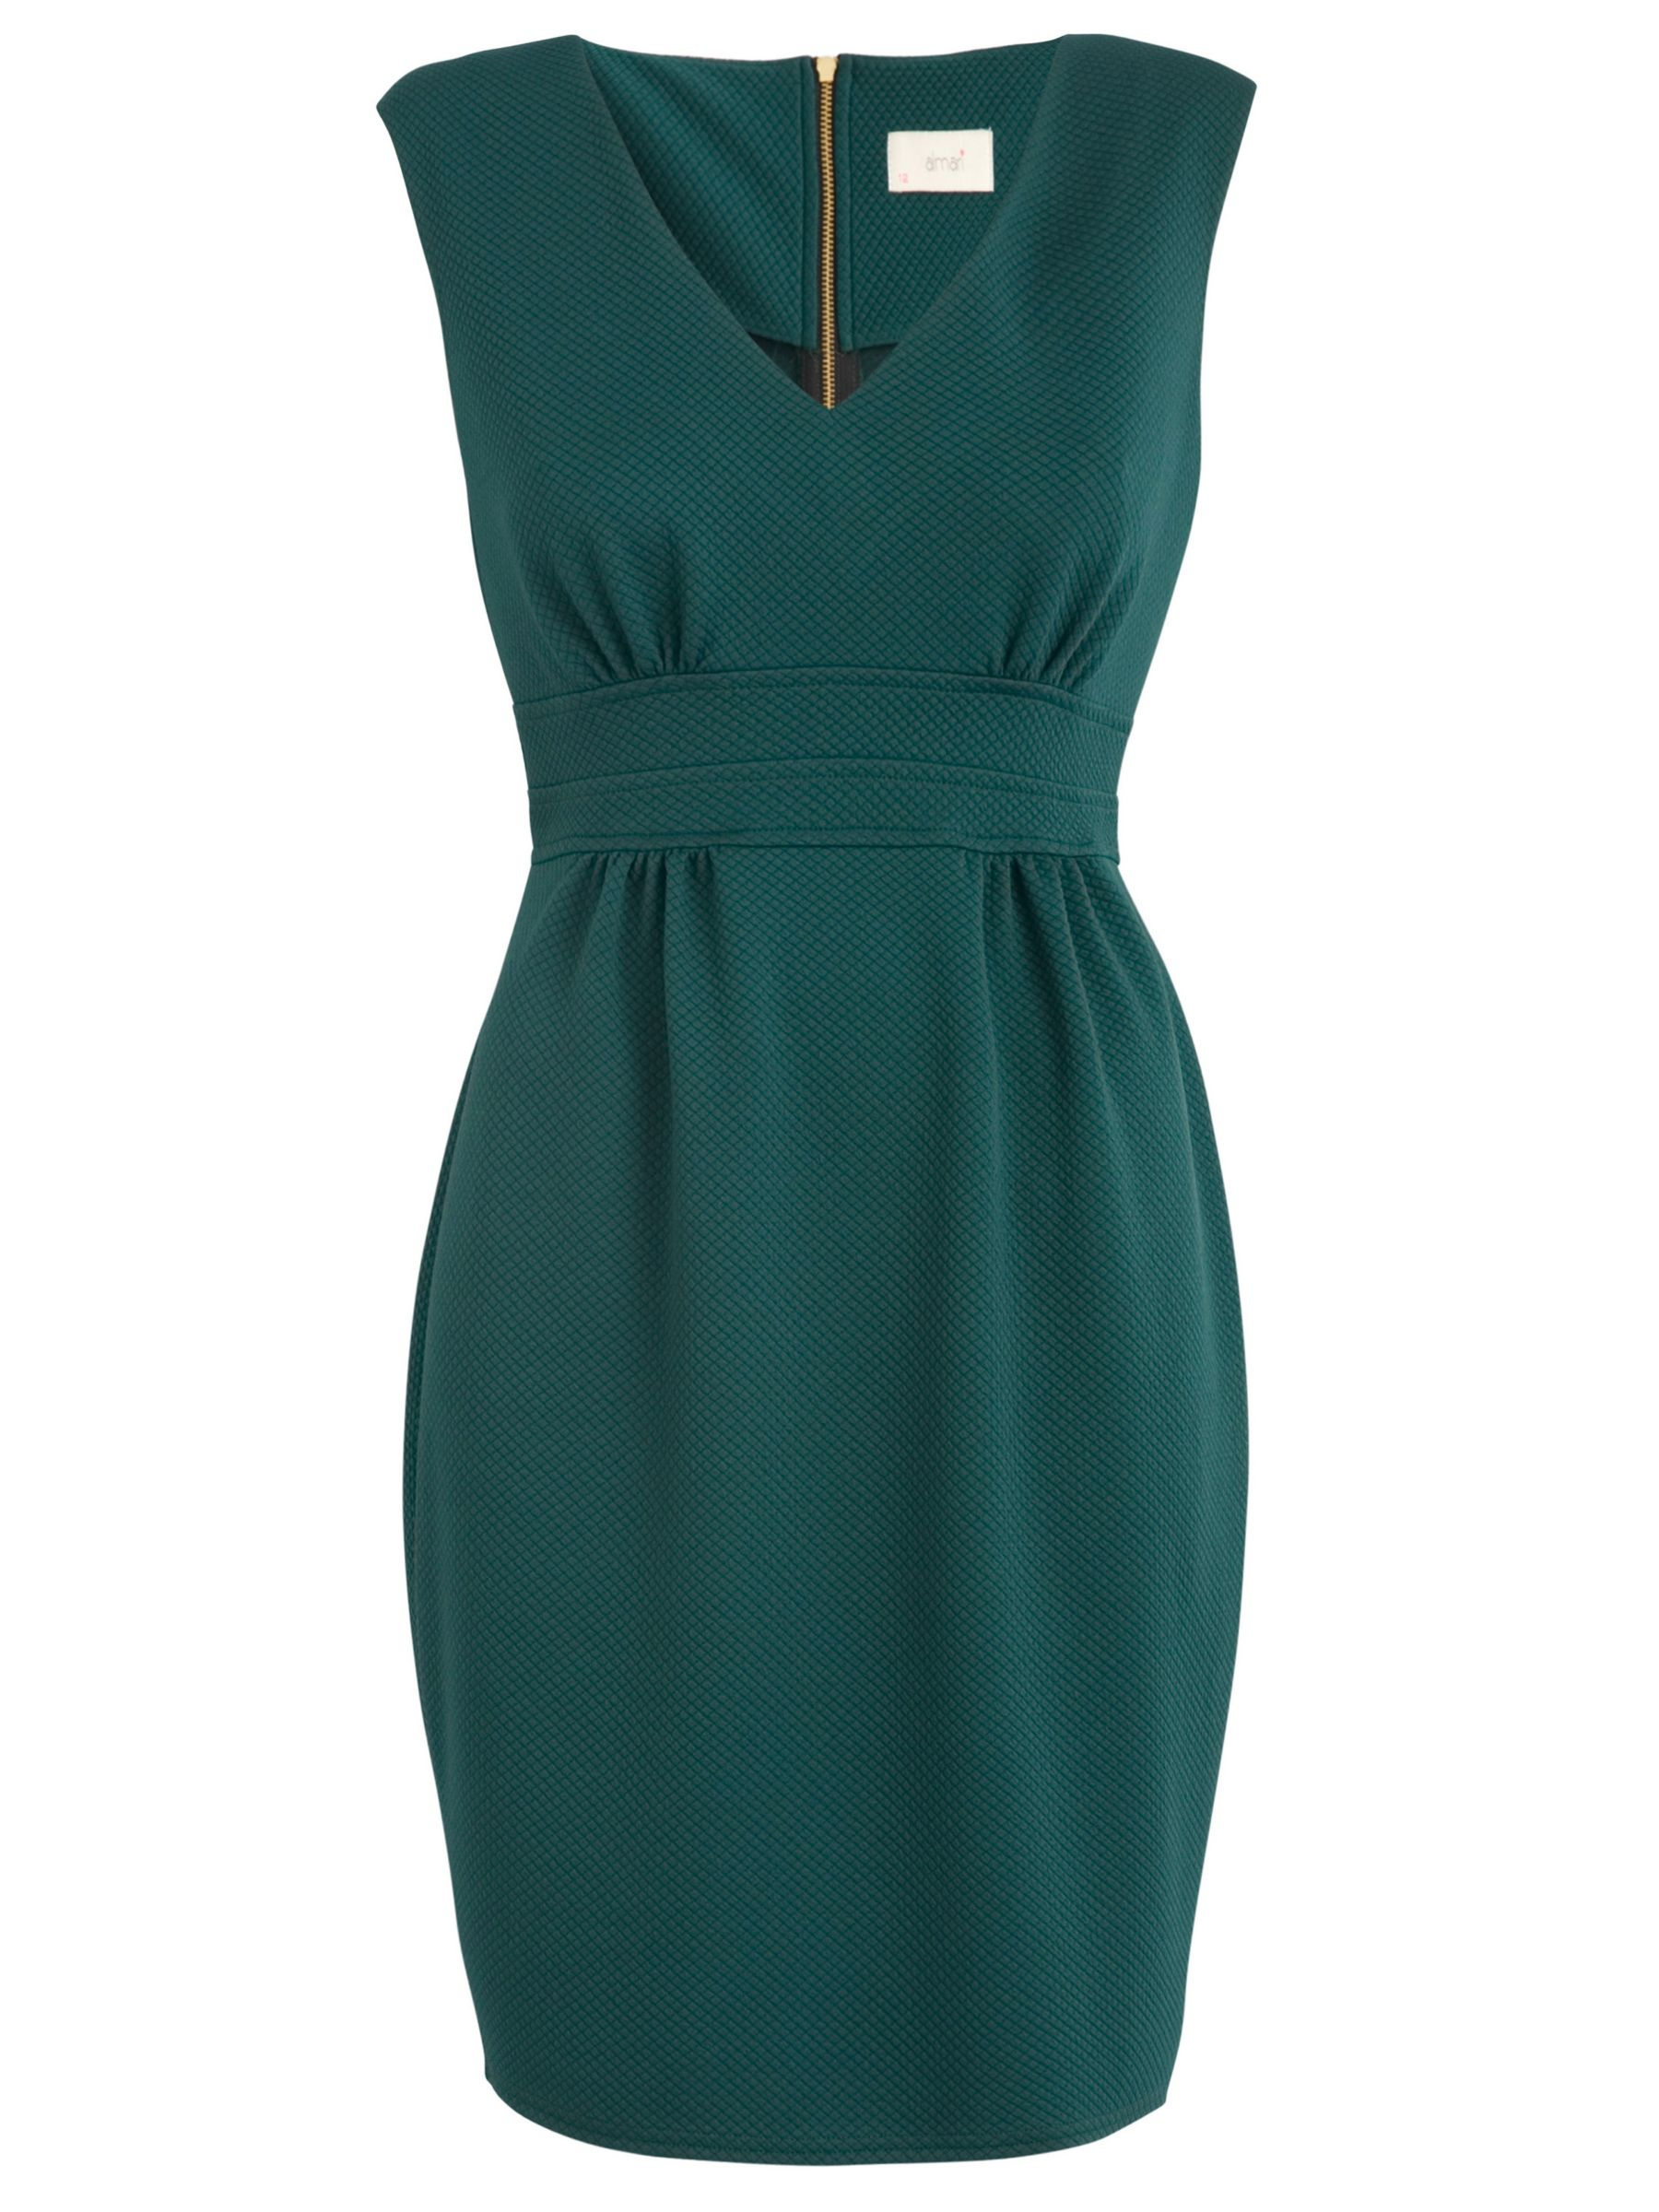 almari double waistband dress teal, almari, double, waistband, dress, teal, 8|10, women, womens dresses, special offers, womenswear offers, womens dresses offers, 925326